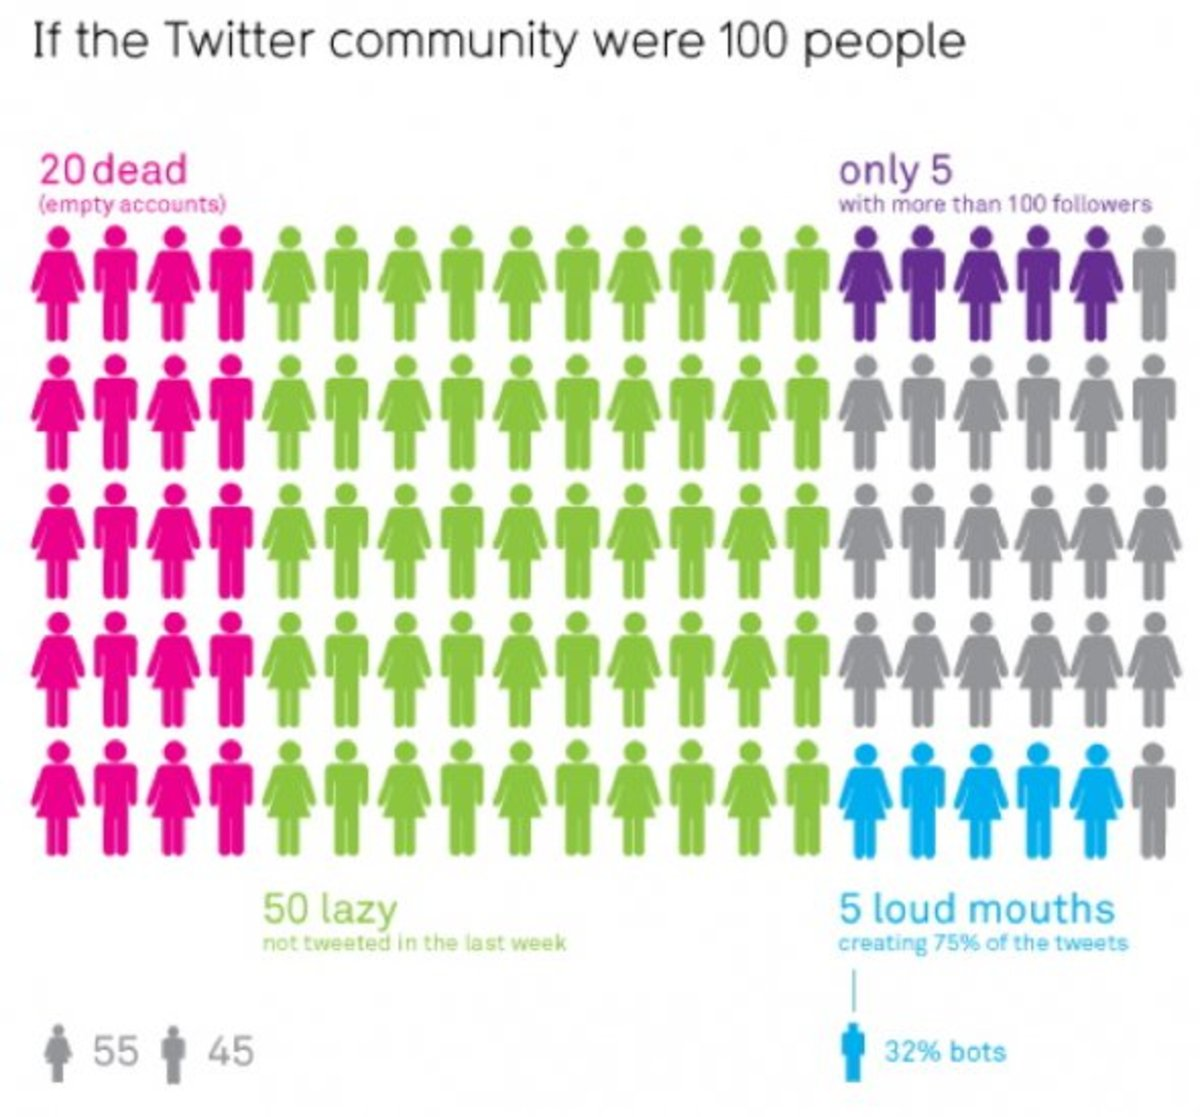 Twitter Statistics: If the Twitter community were 100 people